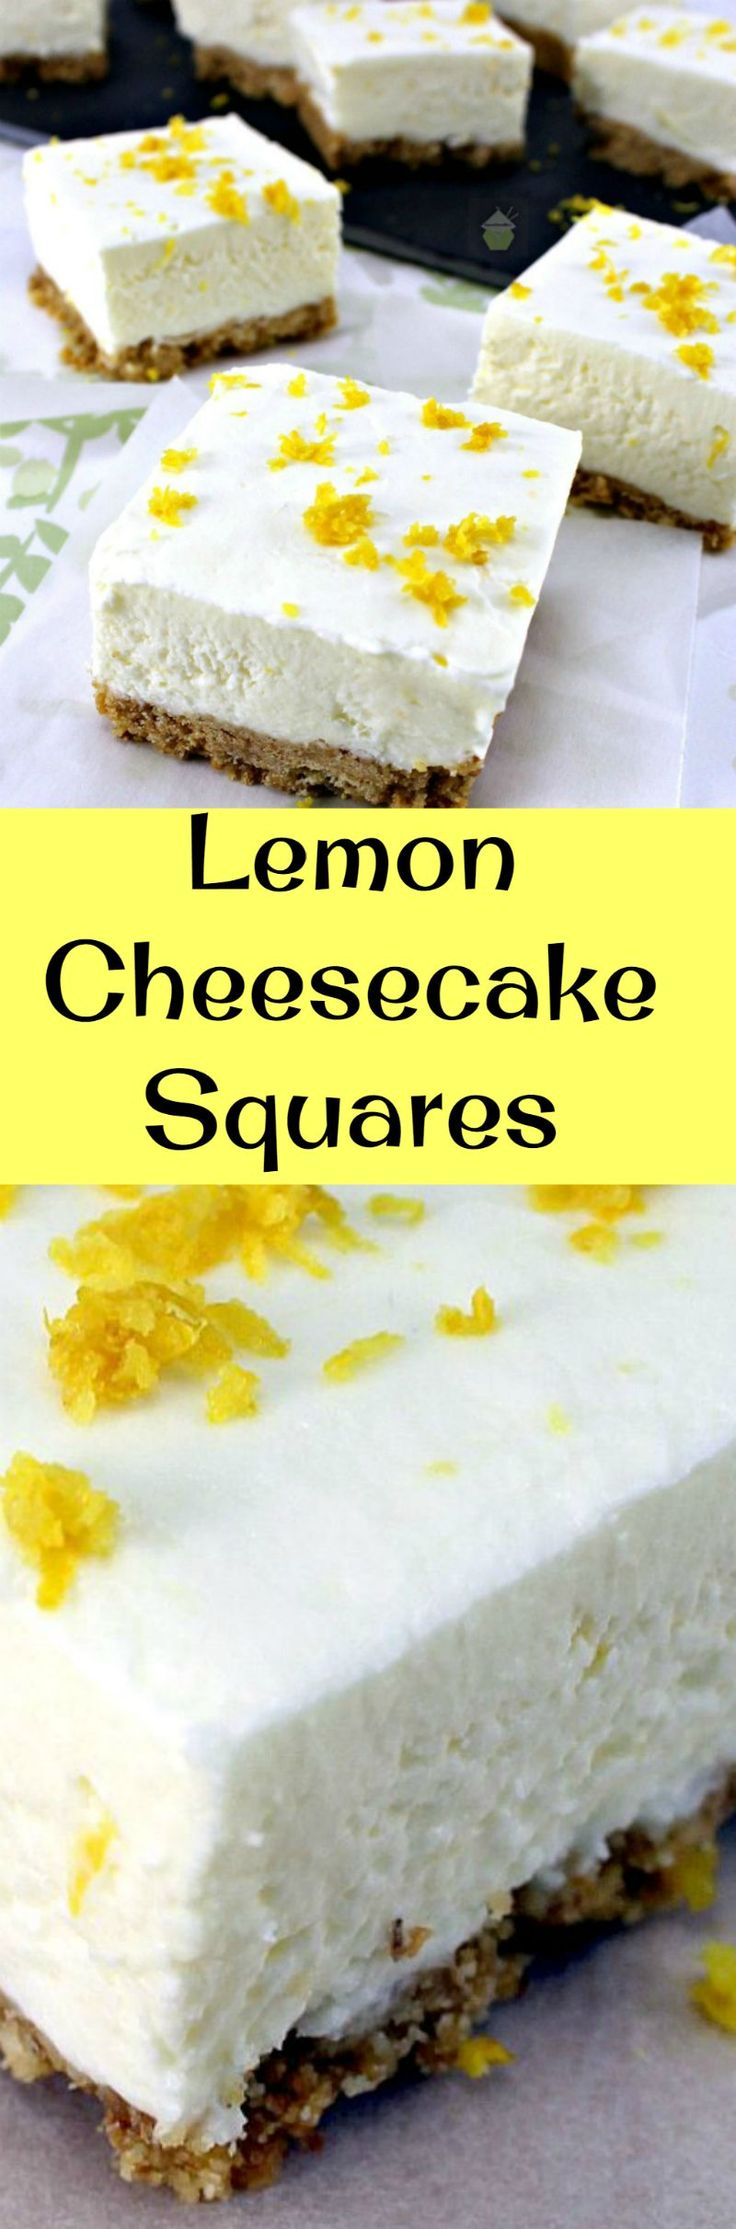 Lemon Cheesecake Squares. A very easy, no bake recipe with ...